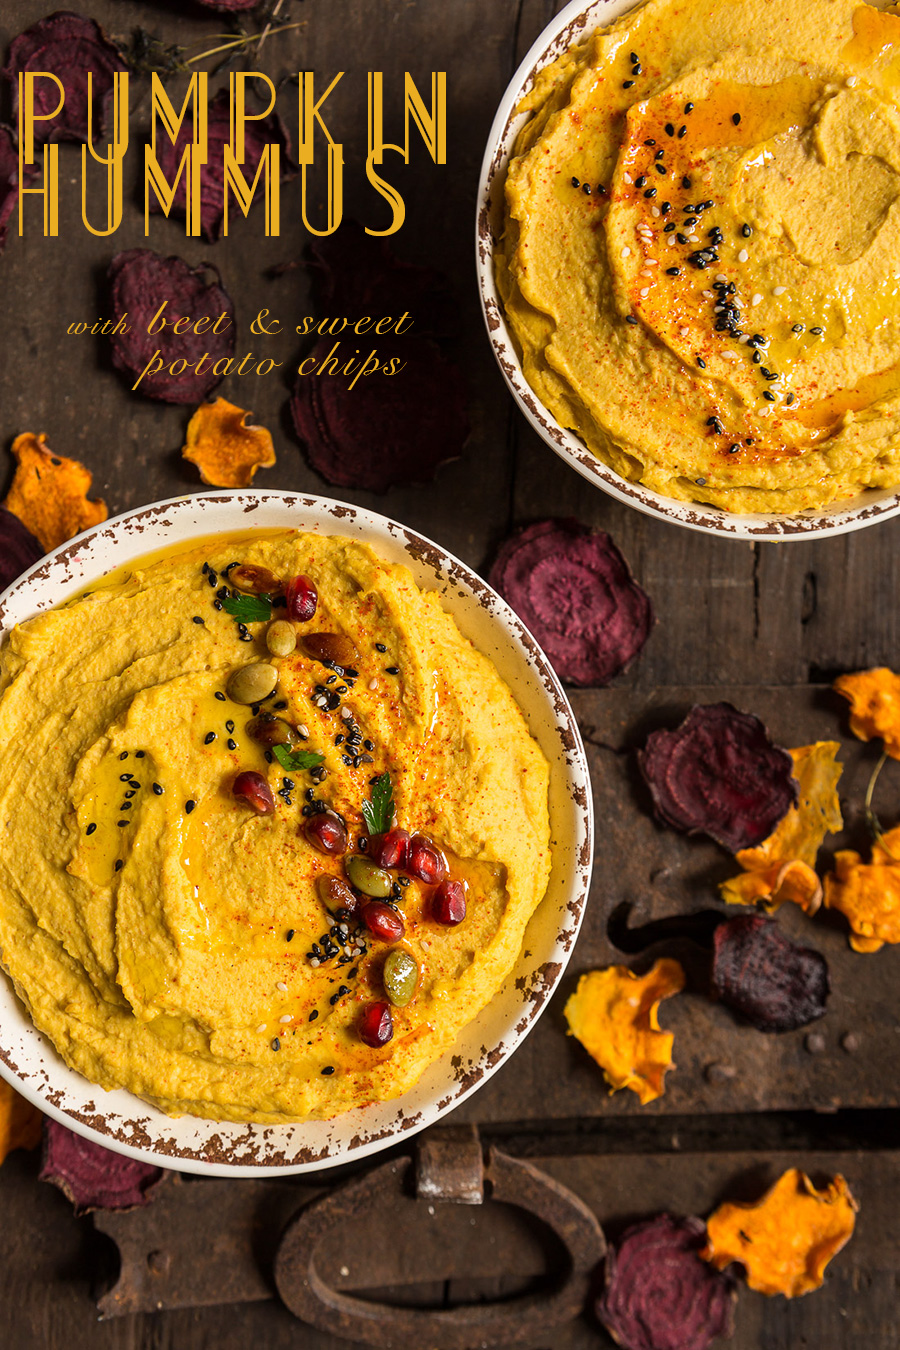 ricetta Hummus alla zucca con chips di barbabietola e patate dolci - pumpkin hummus with beet and sweet potato chips